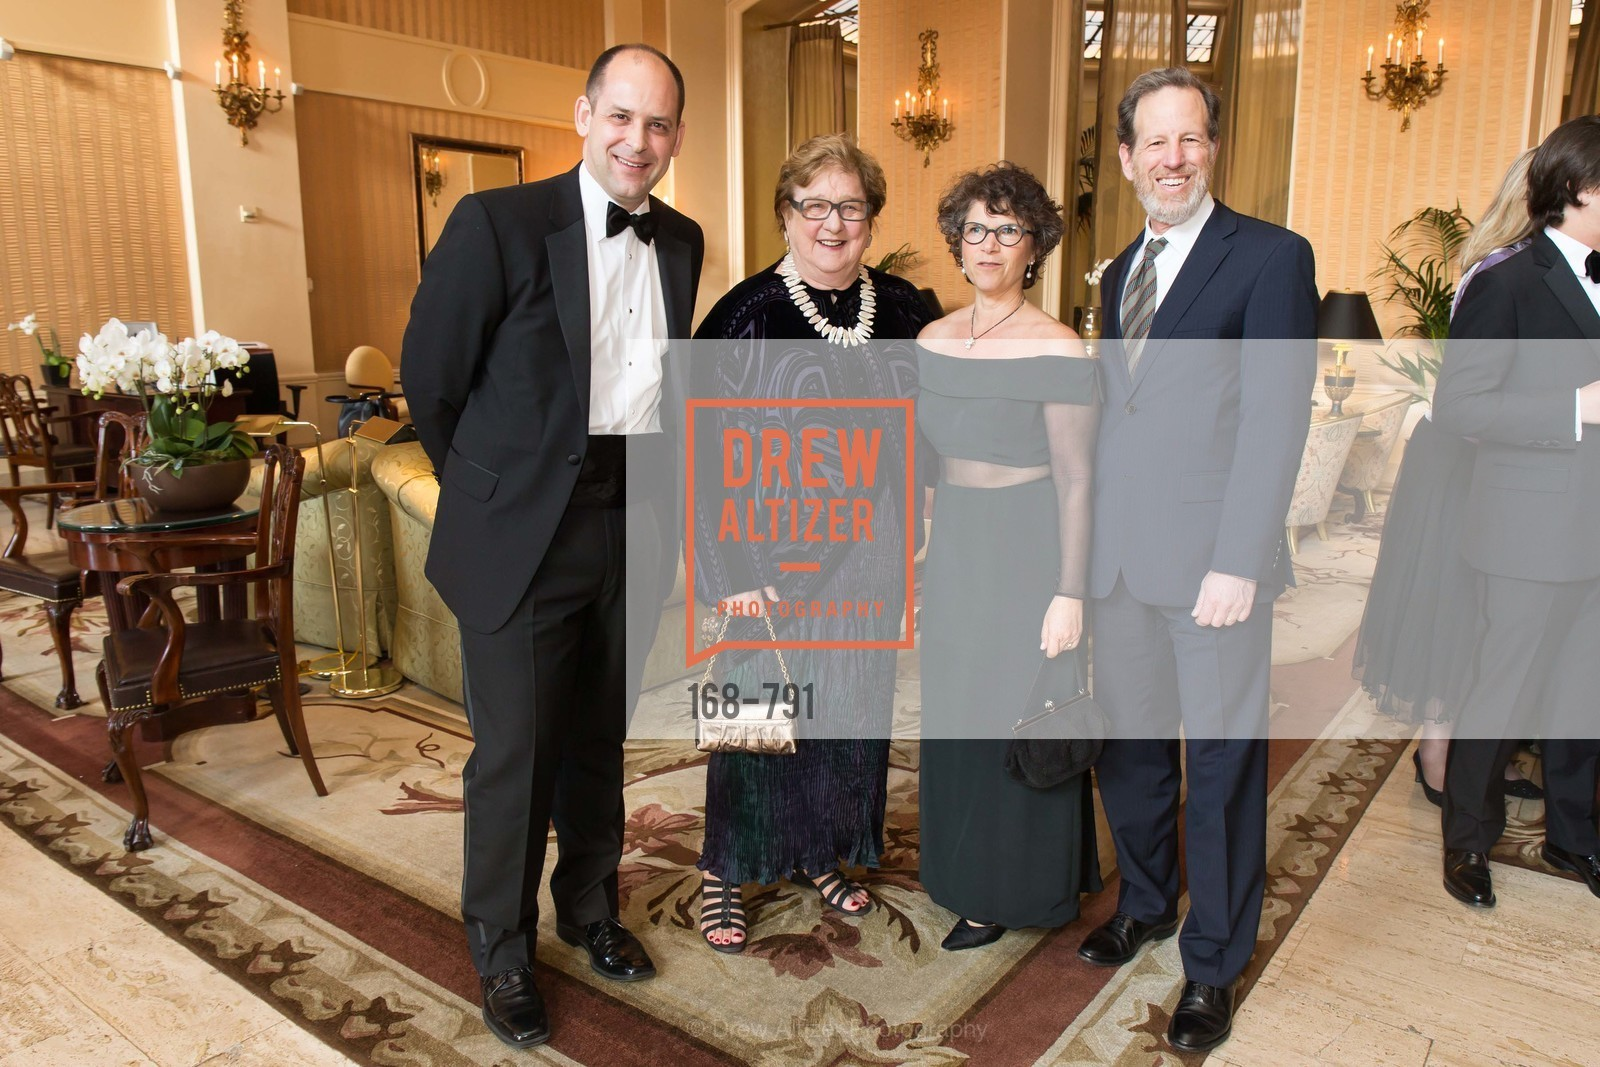 Mike Buhler, Linda Jo Fitz, Rebecca Schnier, Philip Witte, SAN FRANCISCO HERITAGE Soiree 2015, US, April 18th, 2015,Drew Altizer, Drew Altizer Photography, full-service agency, private events, San Francisco photographer, photographer california